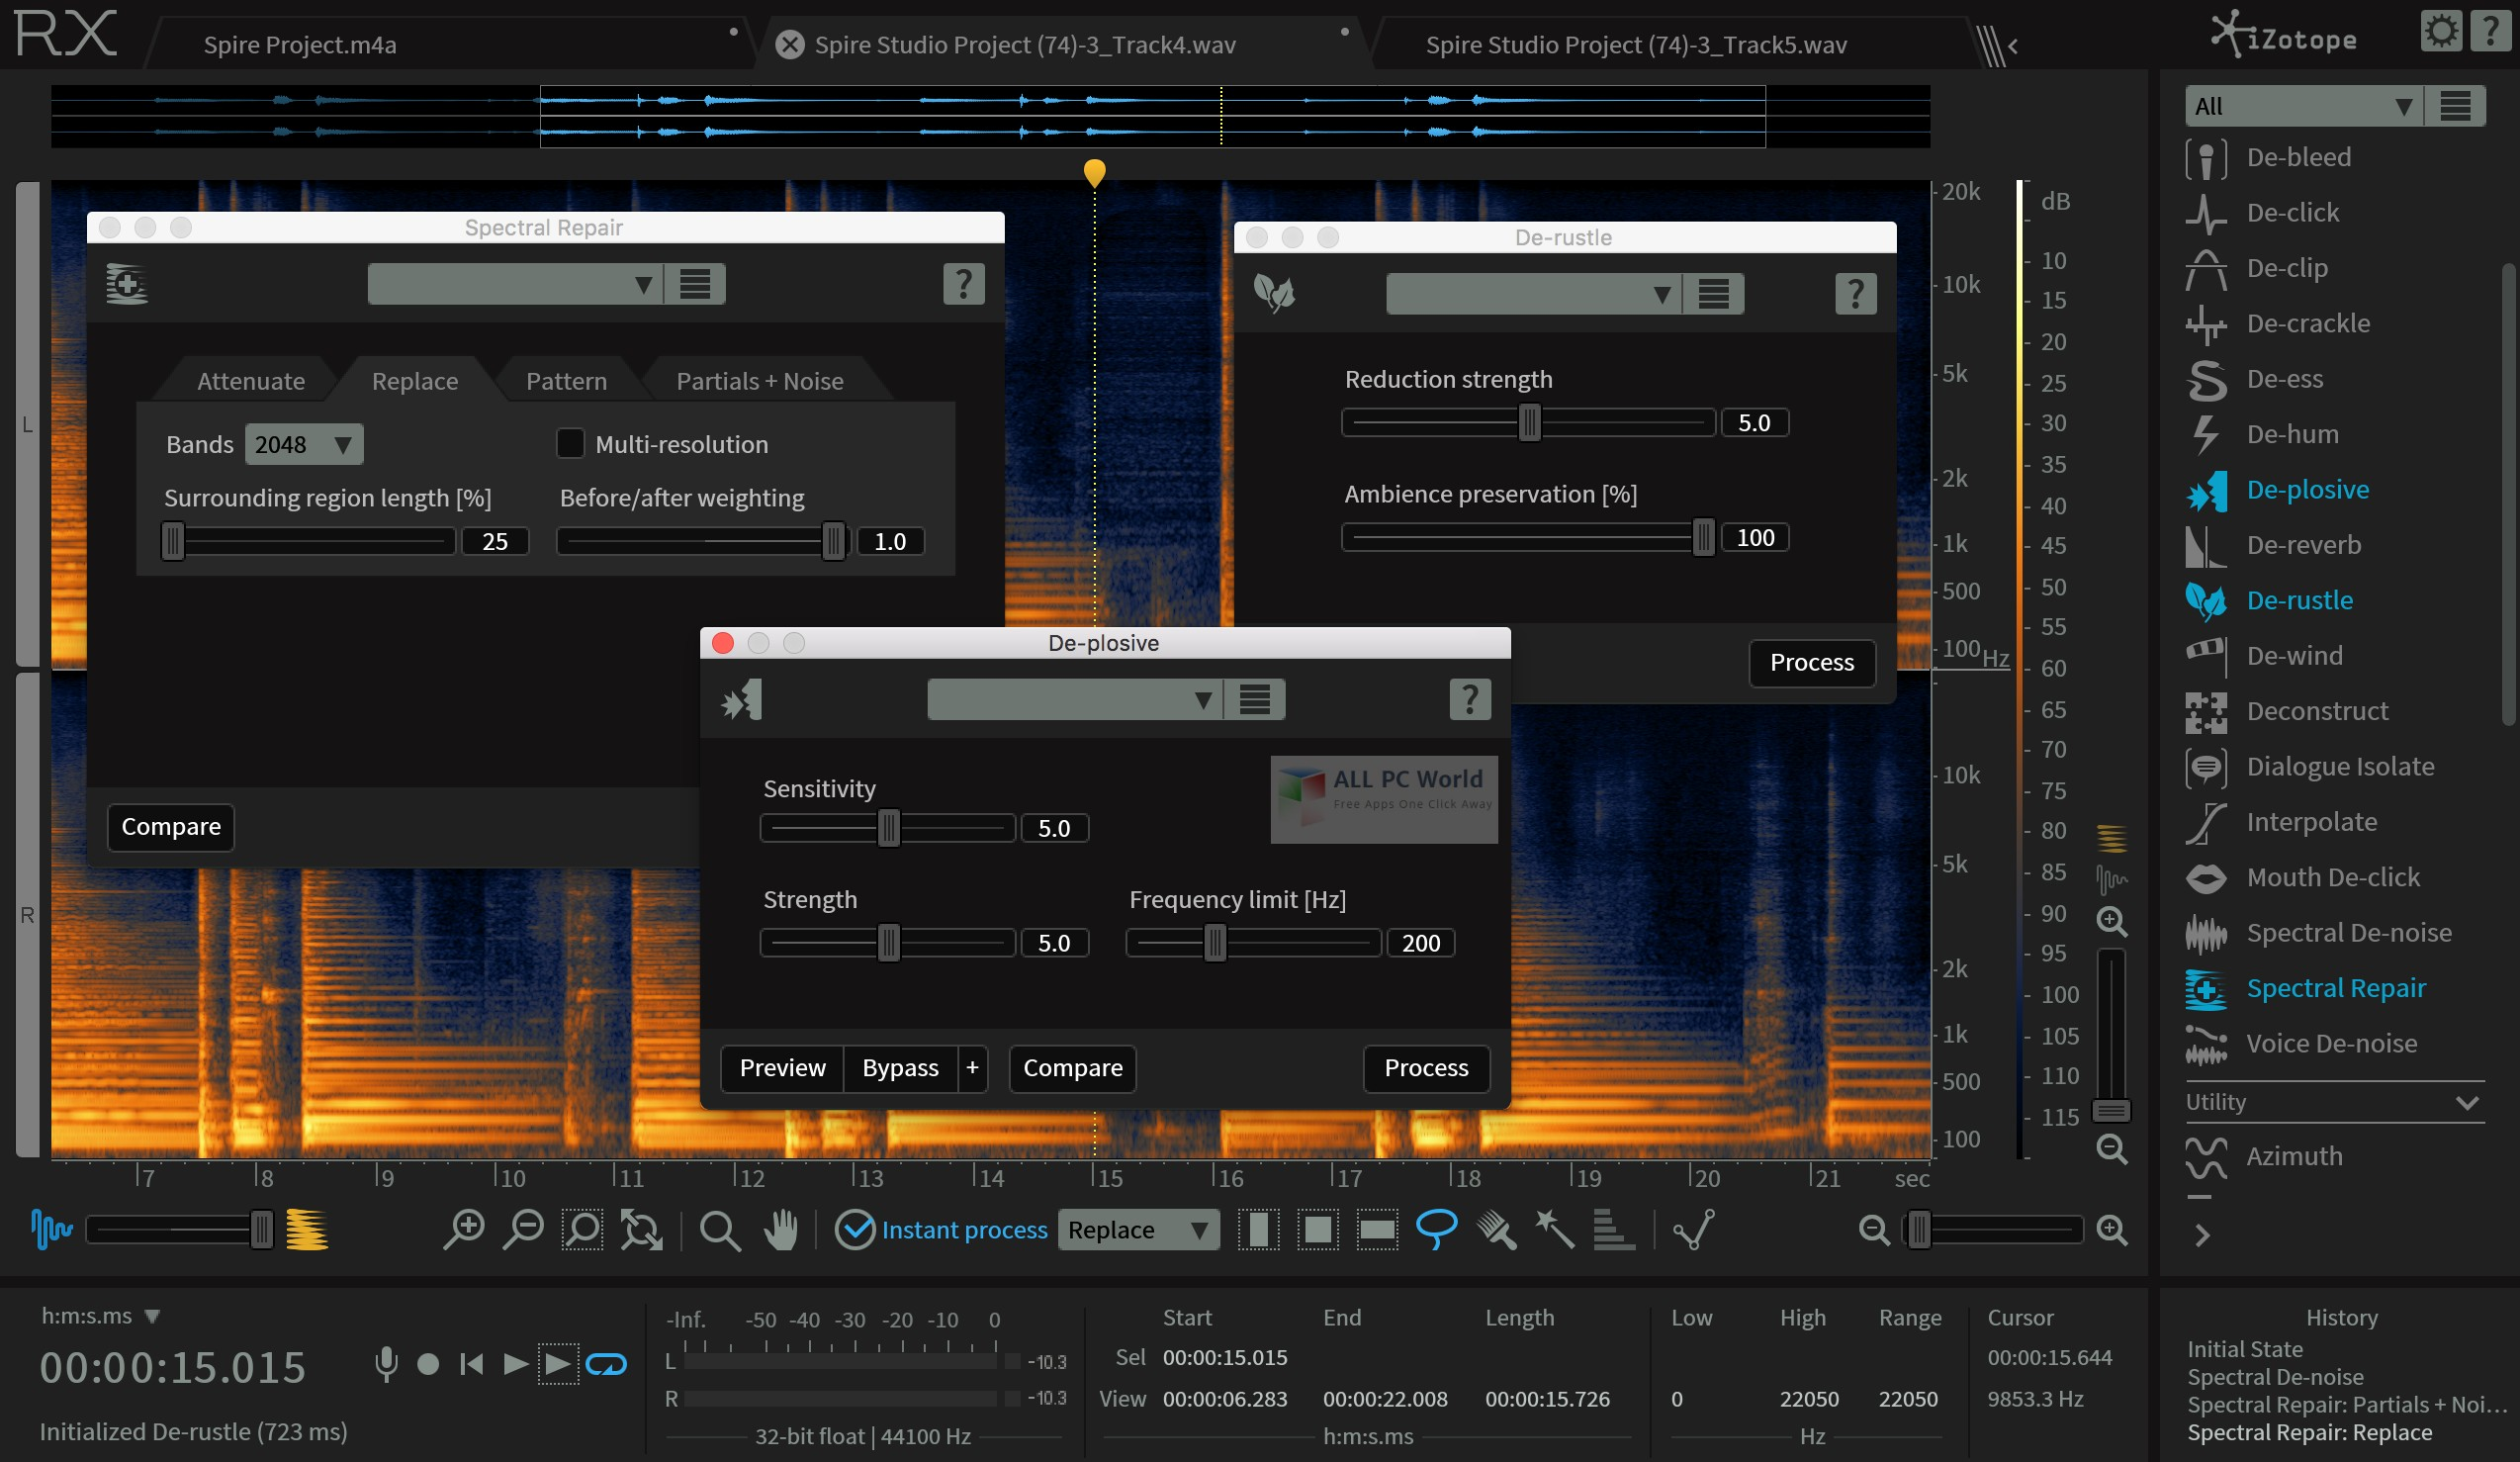 Download iZotope RX 6 Advanced Audio Editor Free - ALL PC World